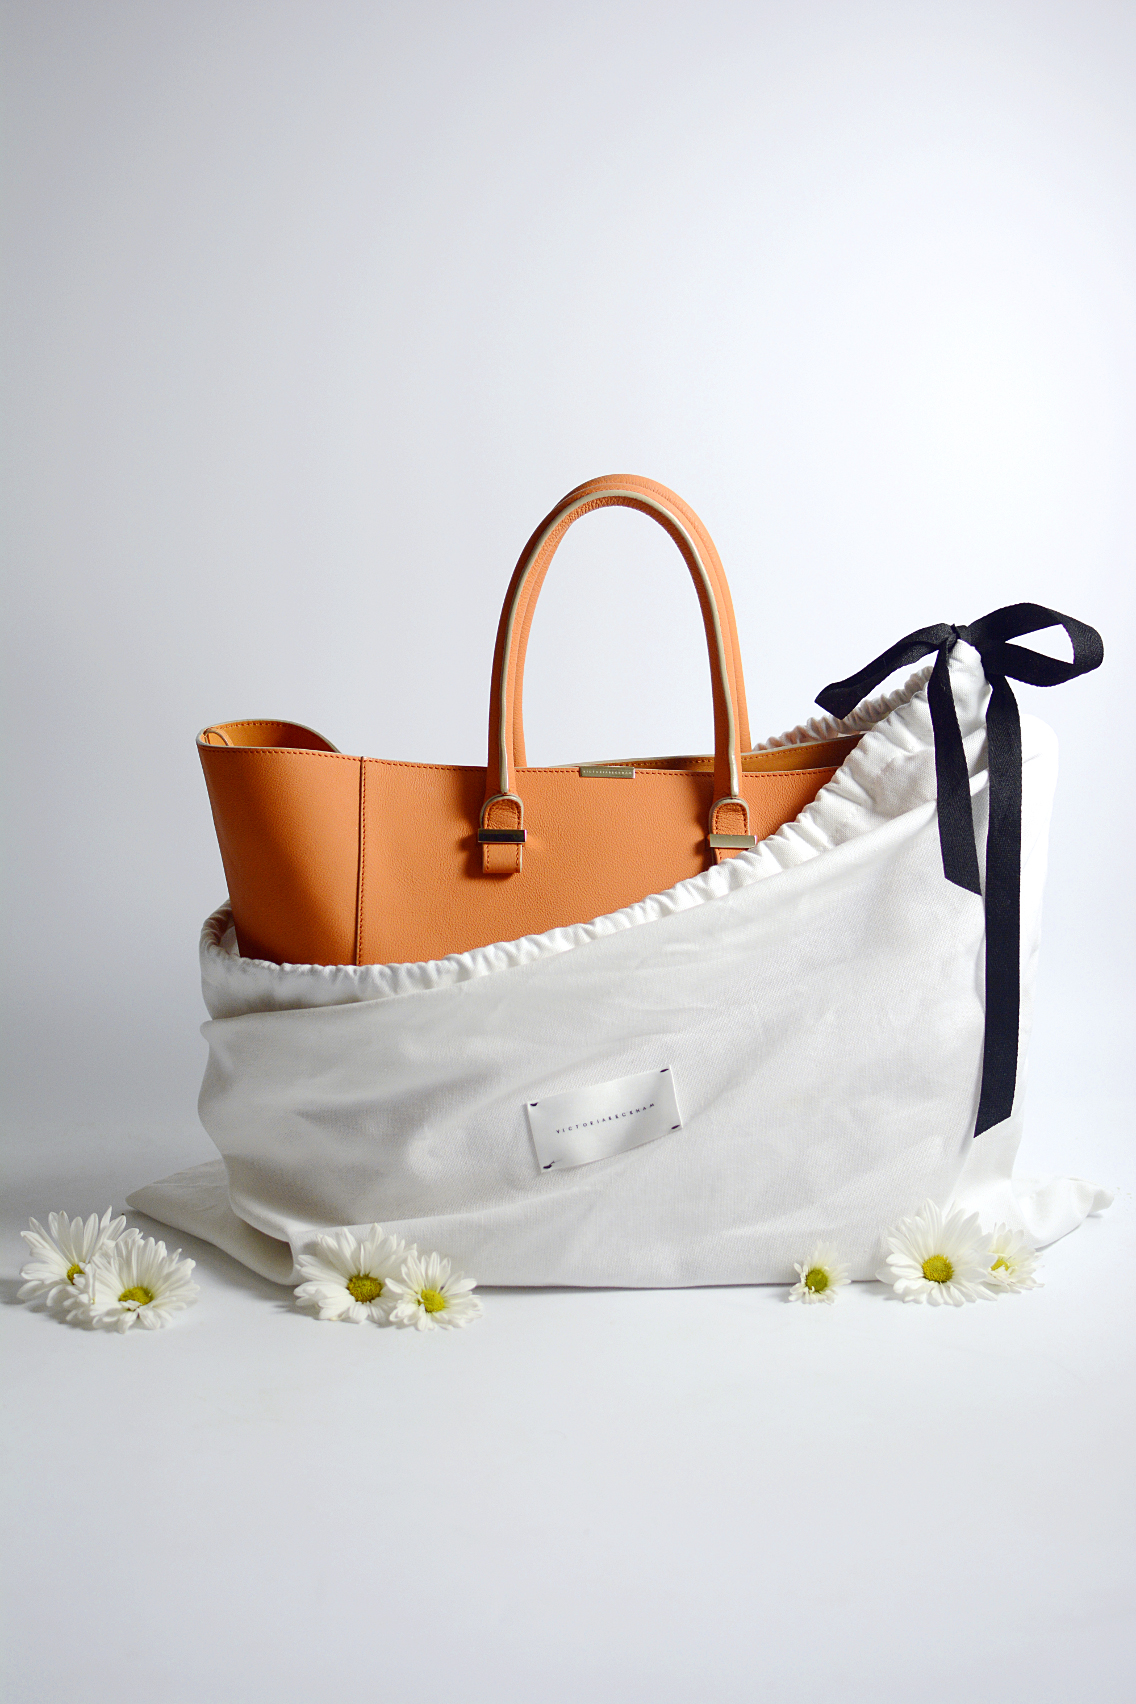 Victoria Beckham Liberty Tote Persimmon Orange 2